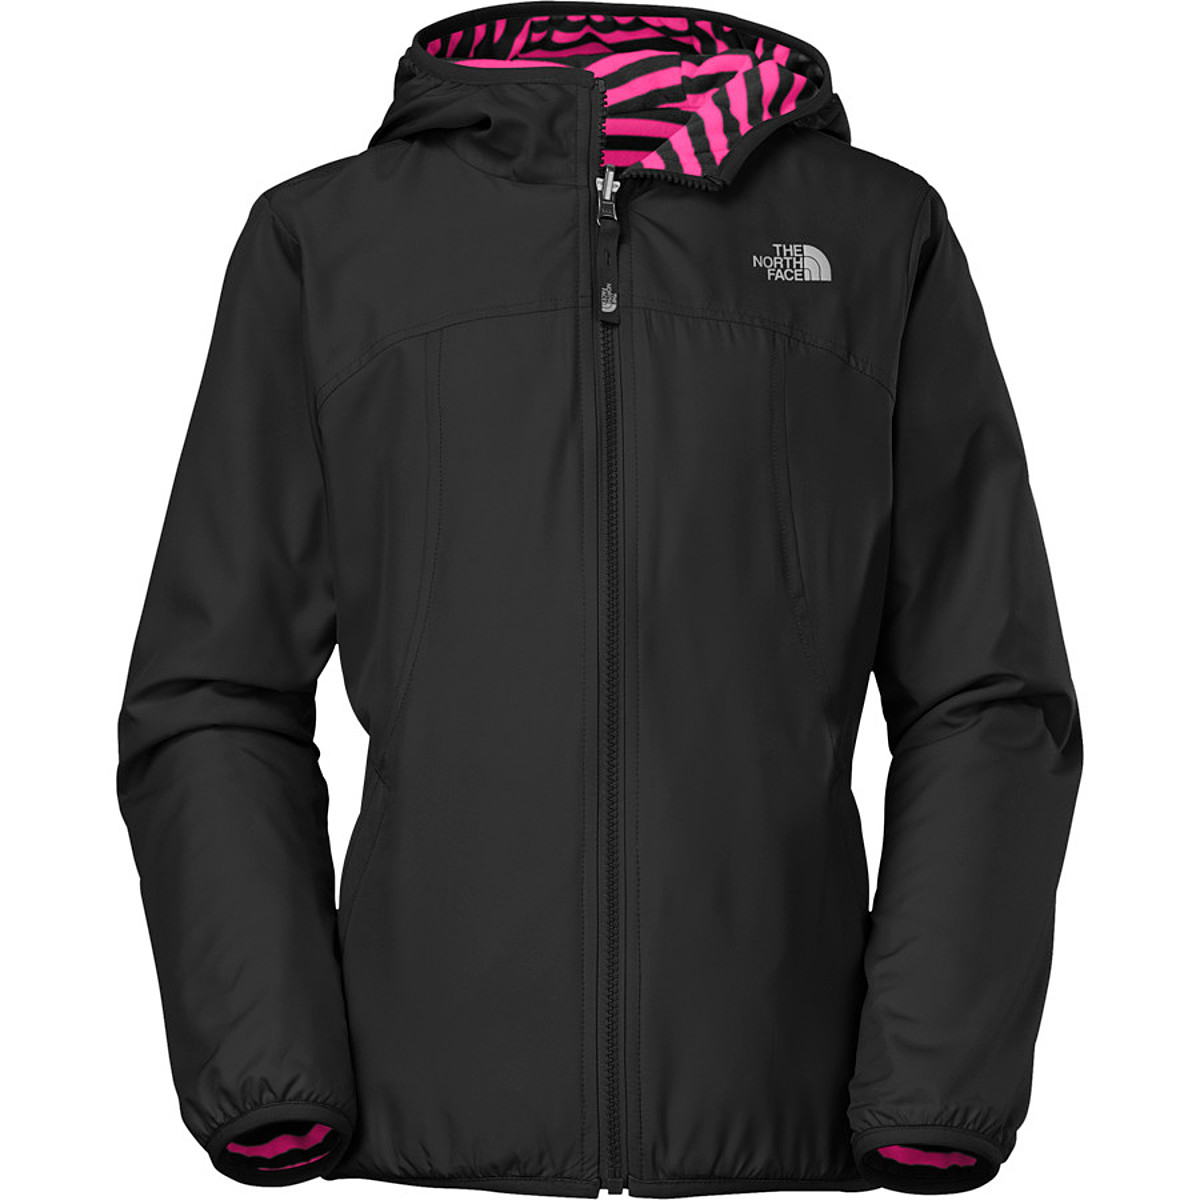 The North Face Reversible Comet Wind Jacket